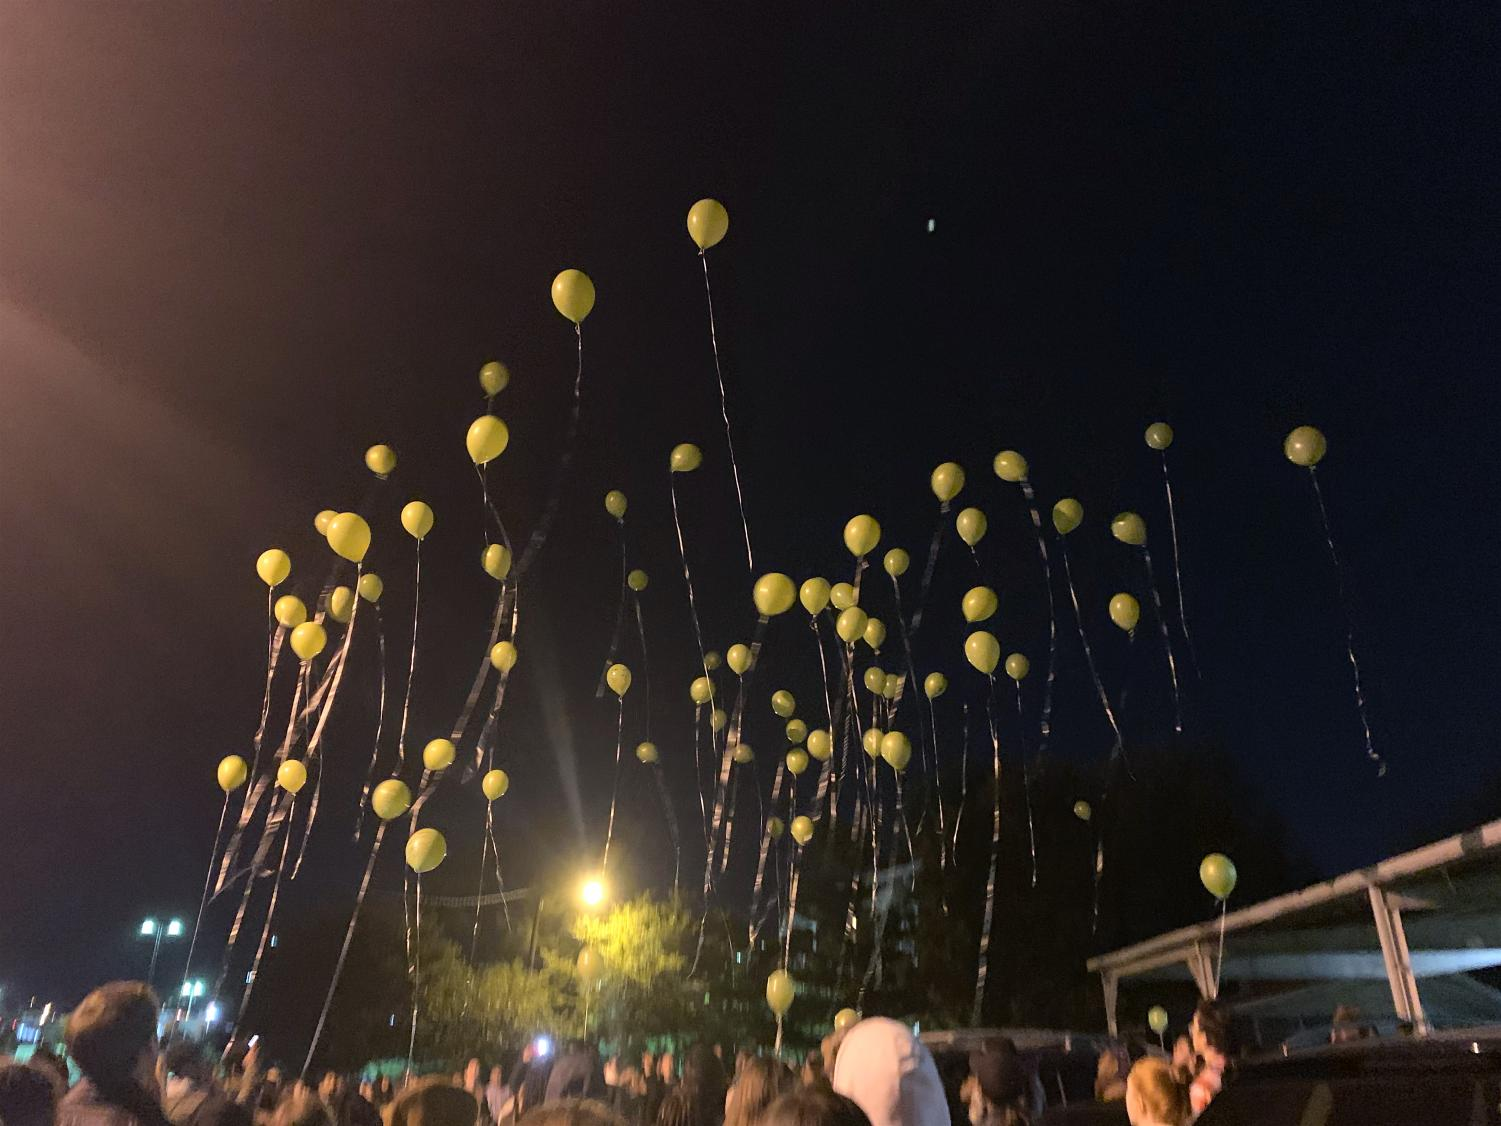 The vigil ended with the symbolic release of several dozen green balloons.